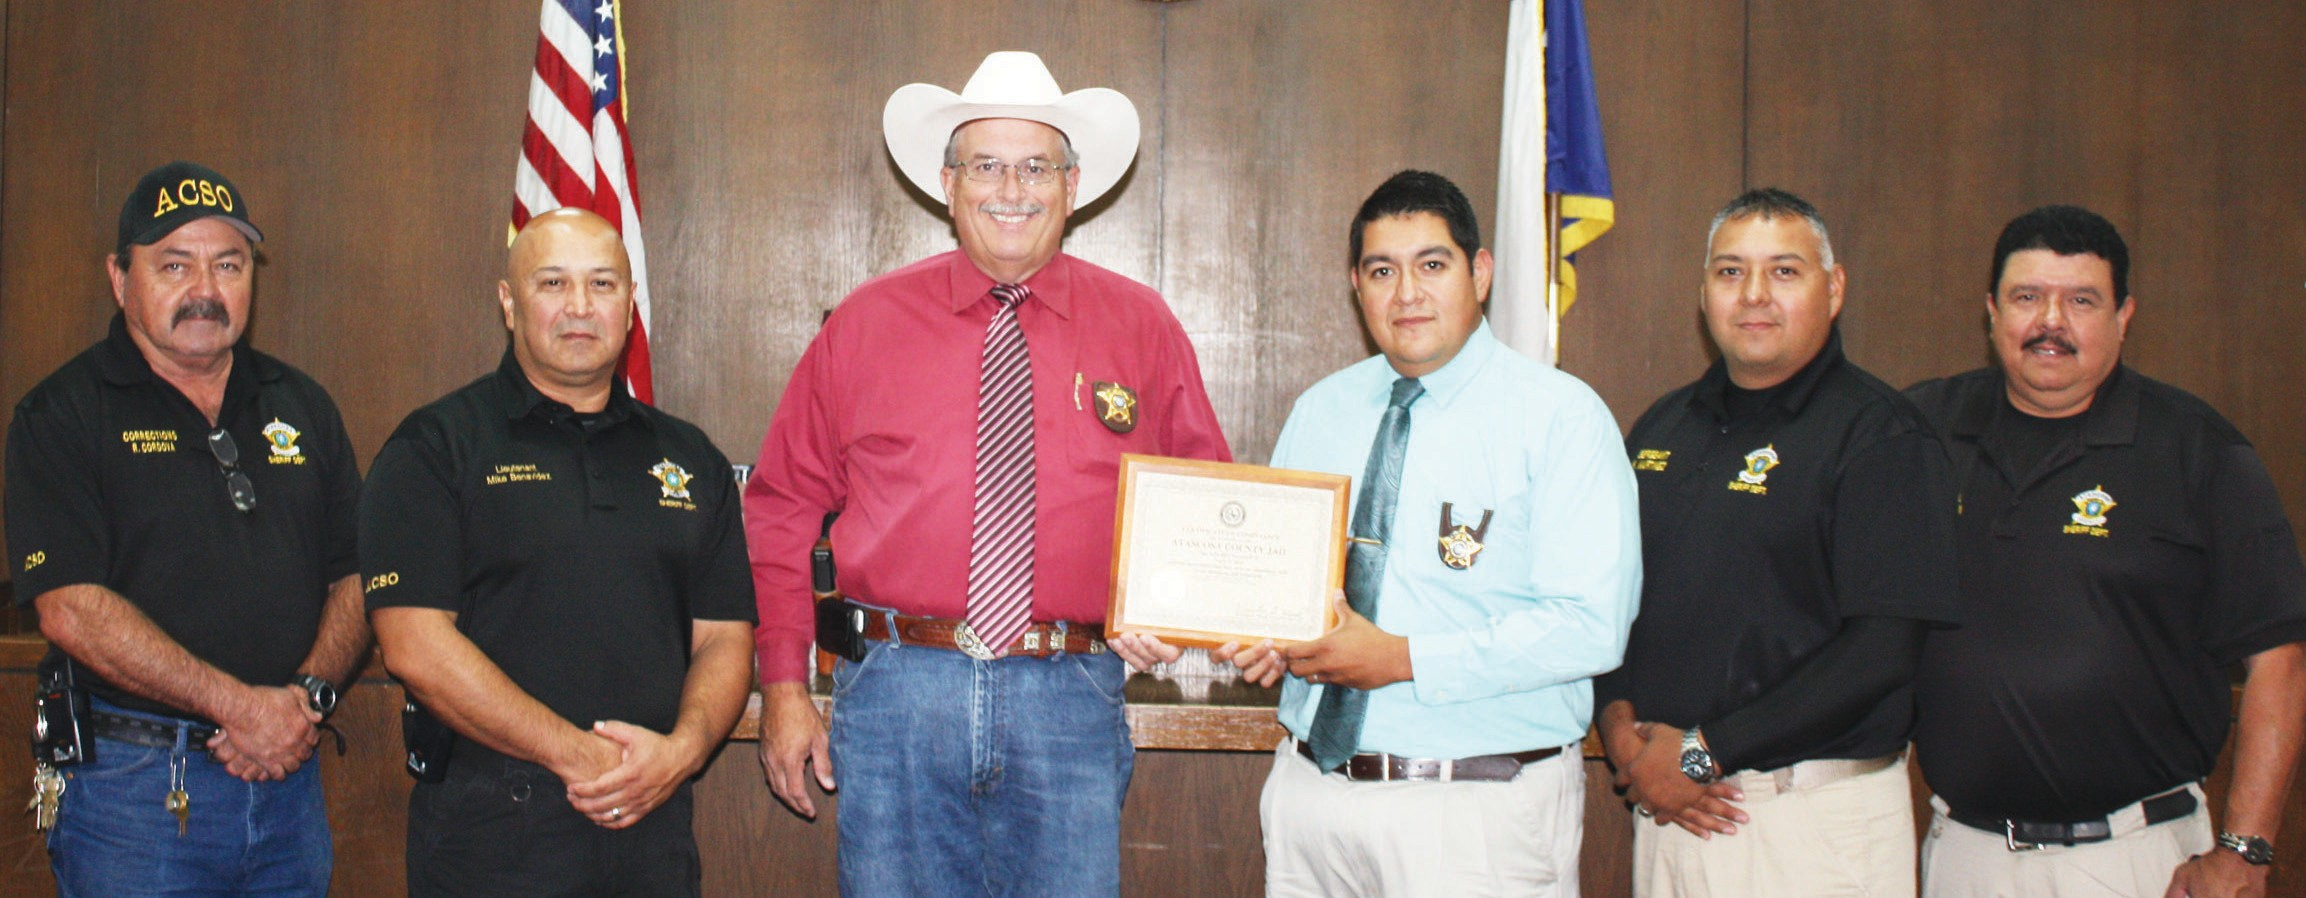 Recently the Atascosa County Jail received its annual inspection by the Texas Commission on Jail Standards. For the second year in a row under Sheriff David Soward, the jail passed inspection without any problems. It's the 34th consecutive year the county jail has passed inspection dating back to former Sheriff Tommy Williams' tenure. Pictured with the State Compliance Certificate are, (left to right) Maintenance Supervisor Richard Cordova, Jail Lieutenant Mike Benavides, Sheriff Soward, Jail Administrator Martin Gonzales, Corrections Sergeant Kenny Martinez and Corrections Corporal Felix Herrera.